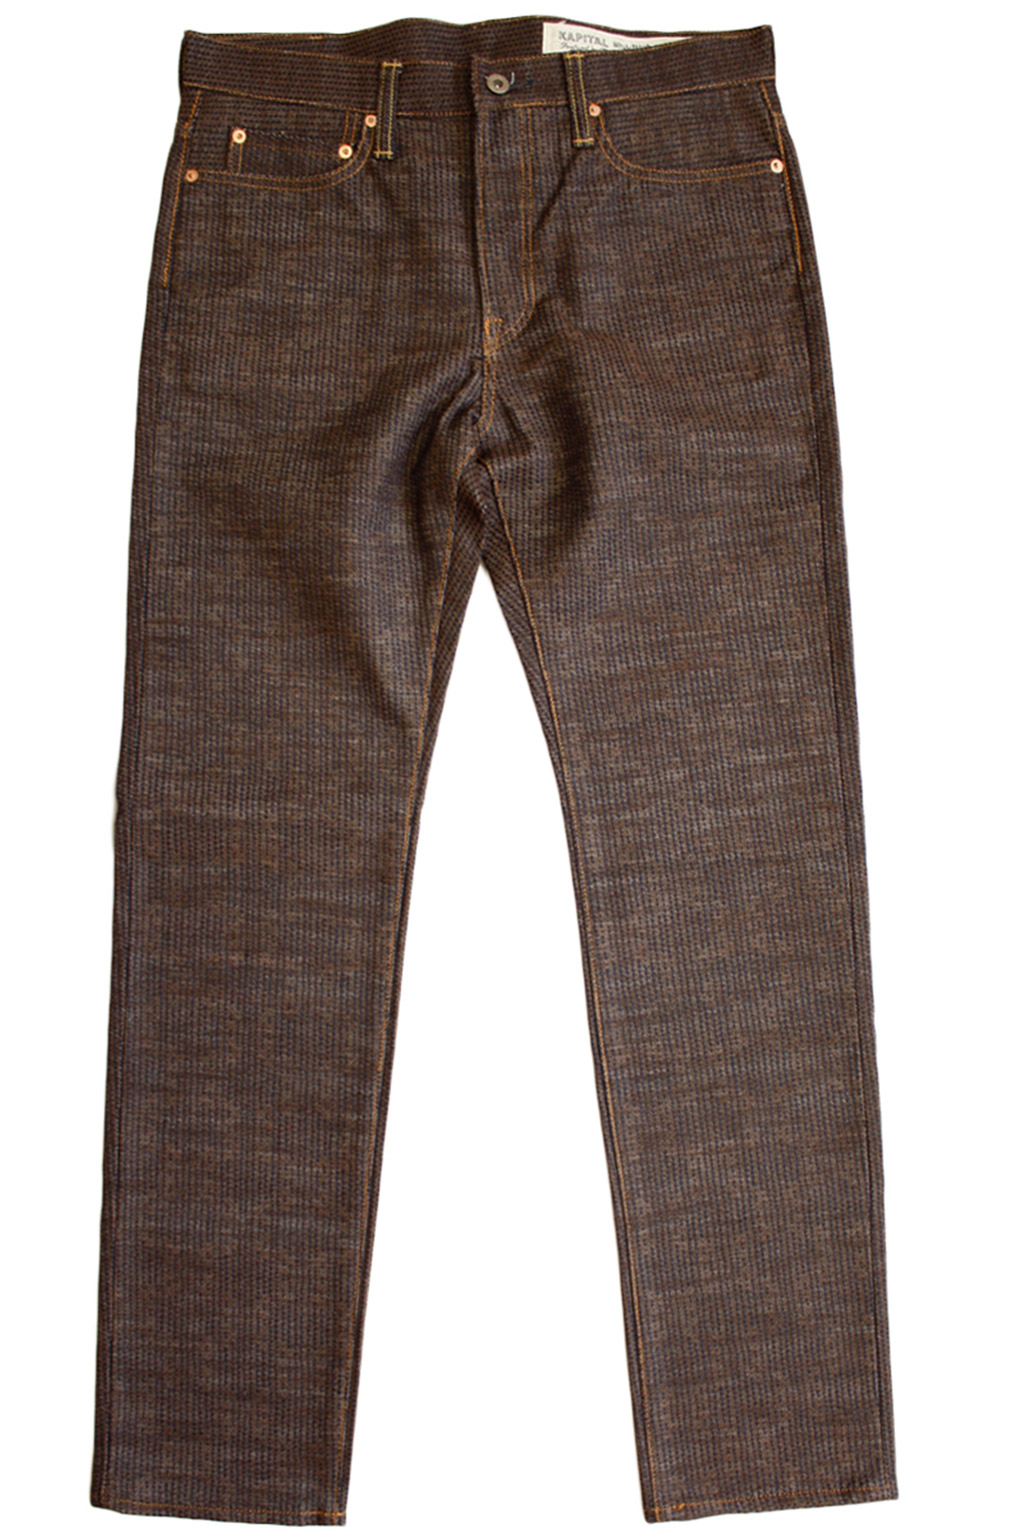 Century Denim 5P Stone N5S - Brown